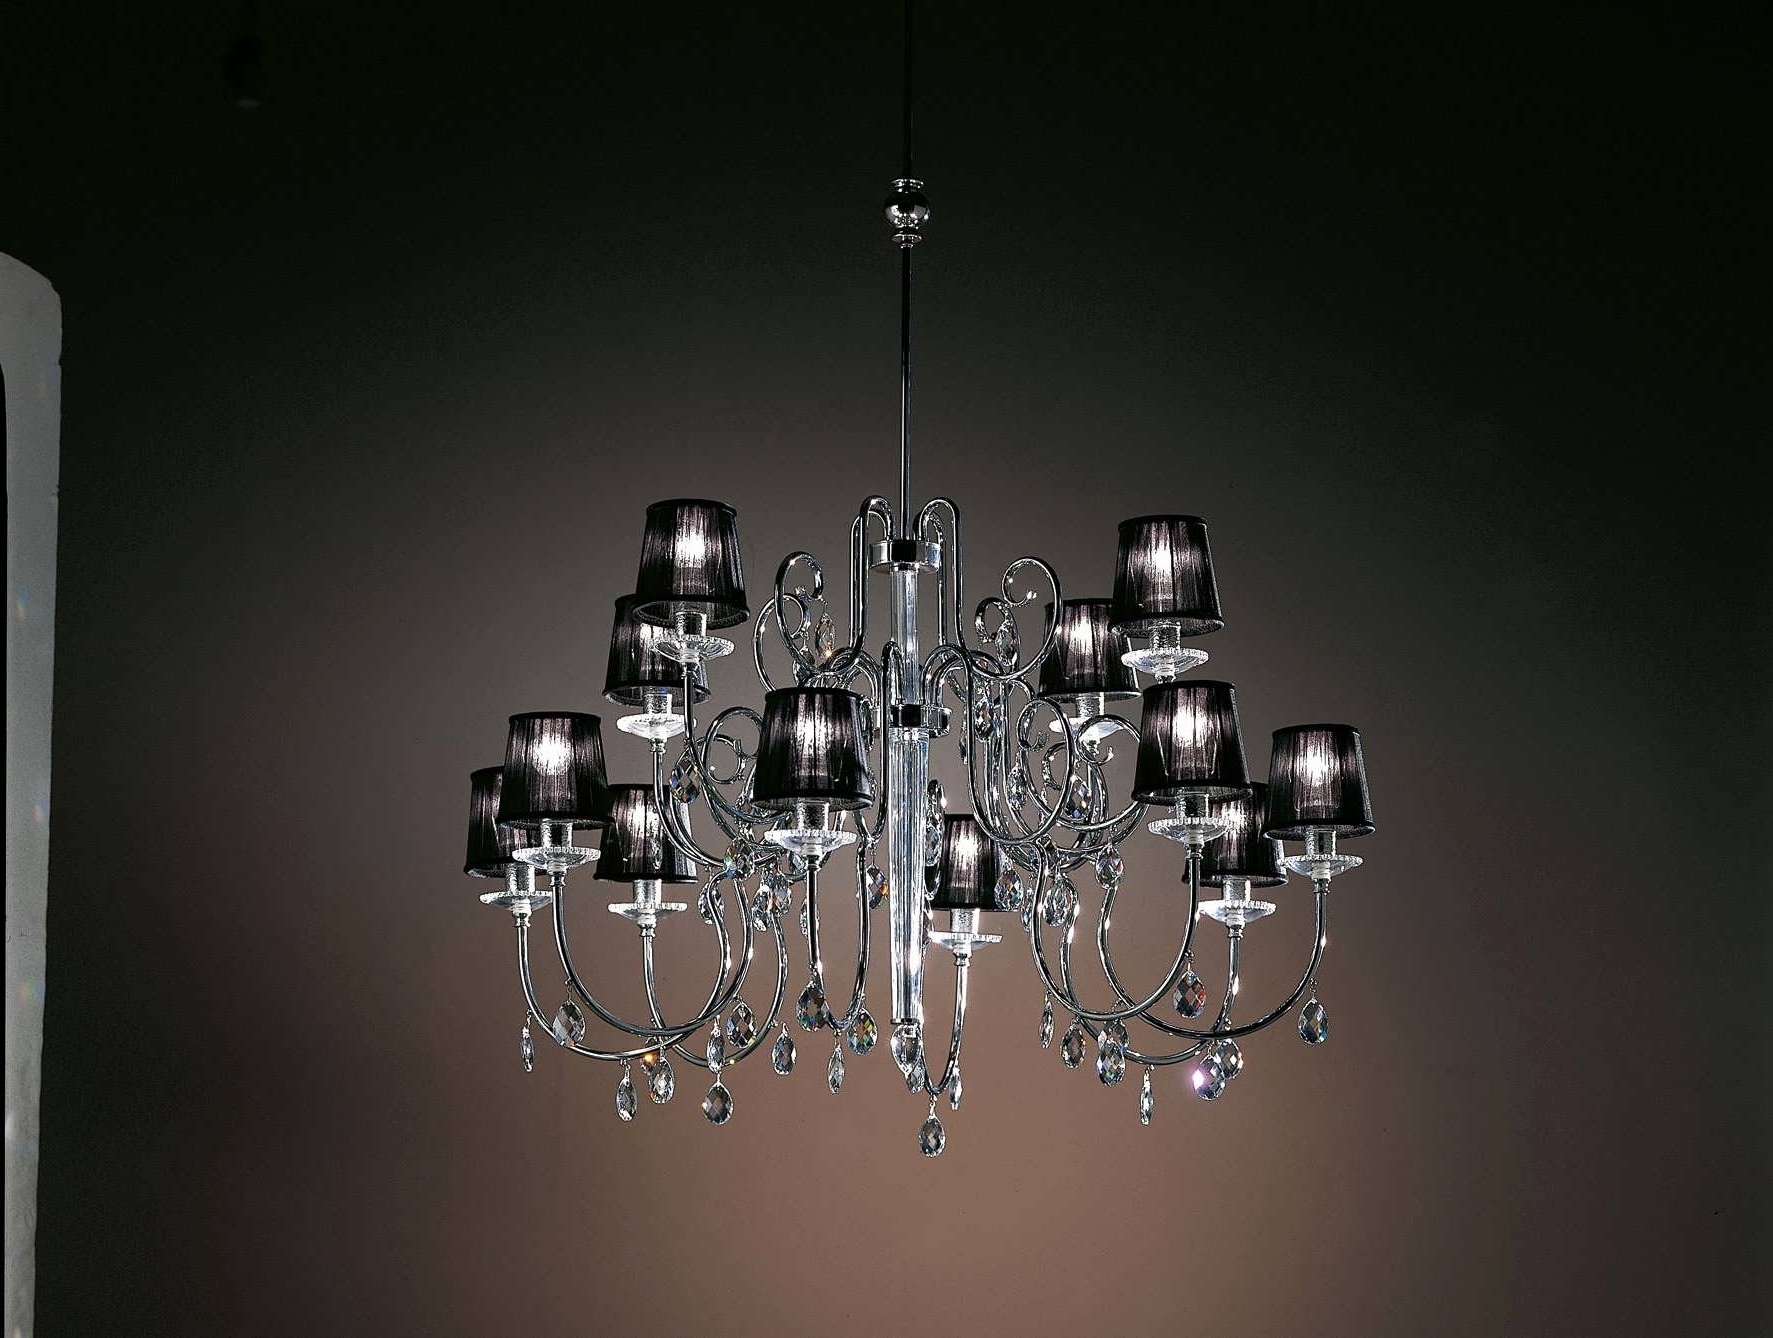 Large Modern Chandeliers In Recent Light : Modern Chandelier Lighting Small Black Keywordrelevance (View 9 of 20)